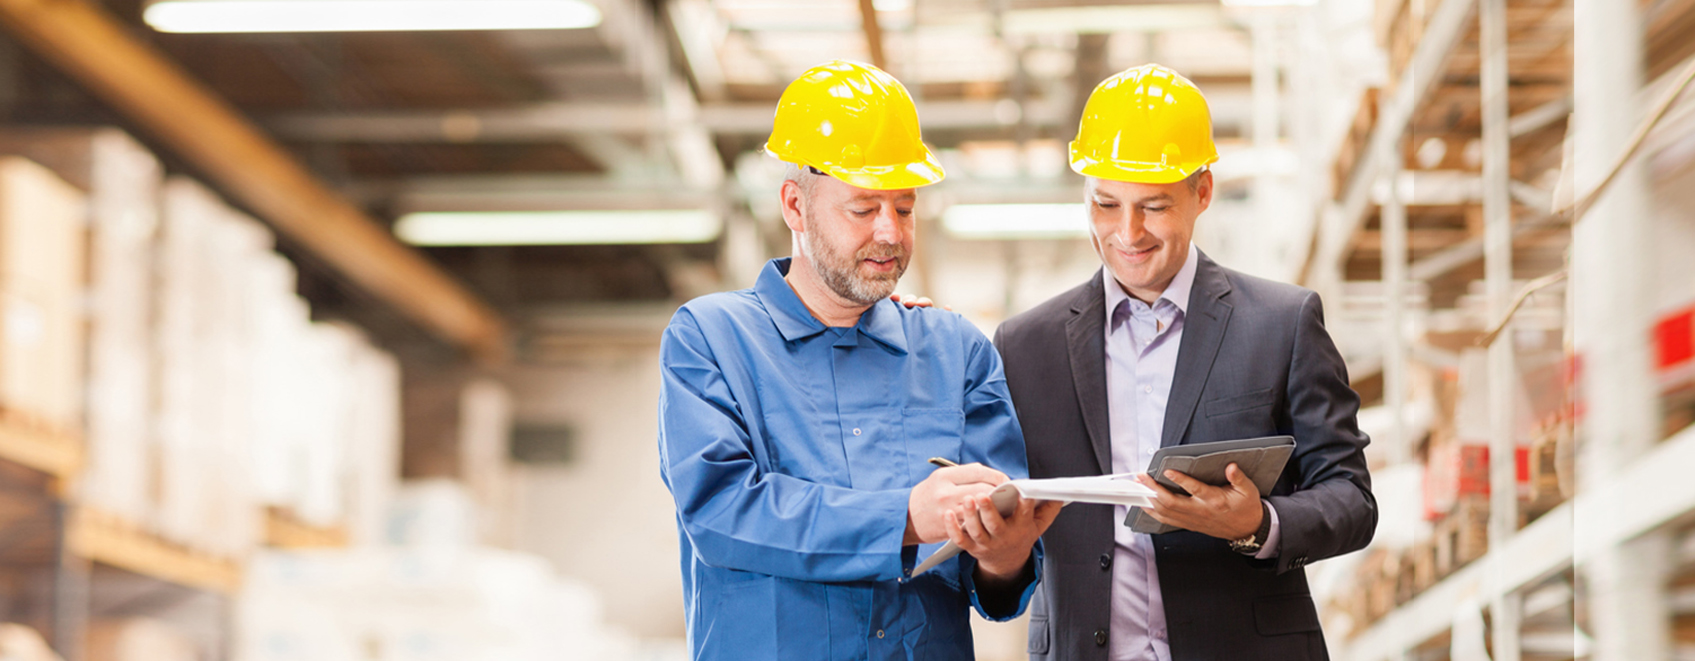 2 people in hardhats, reviewing papers in warehouse